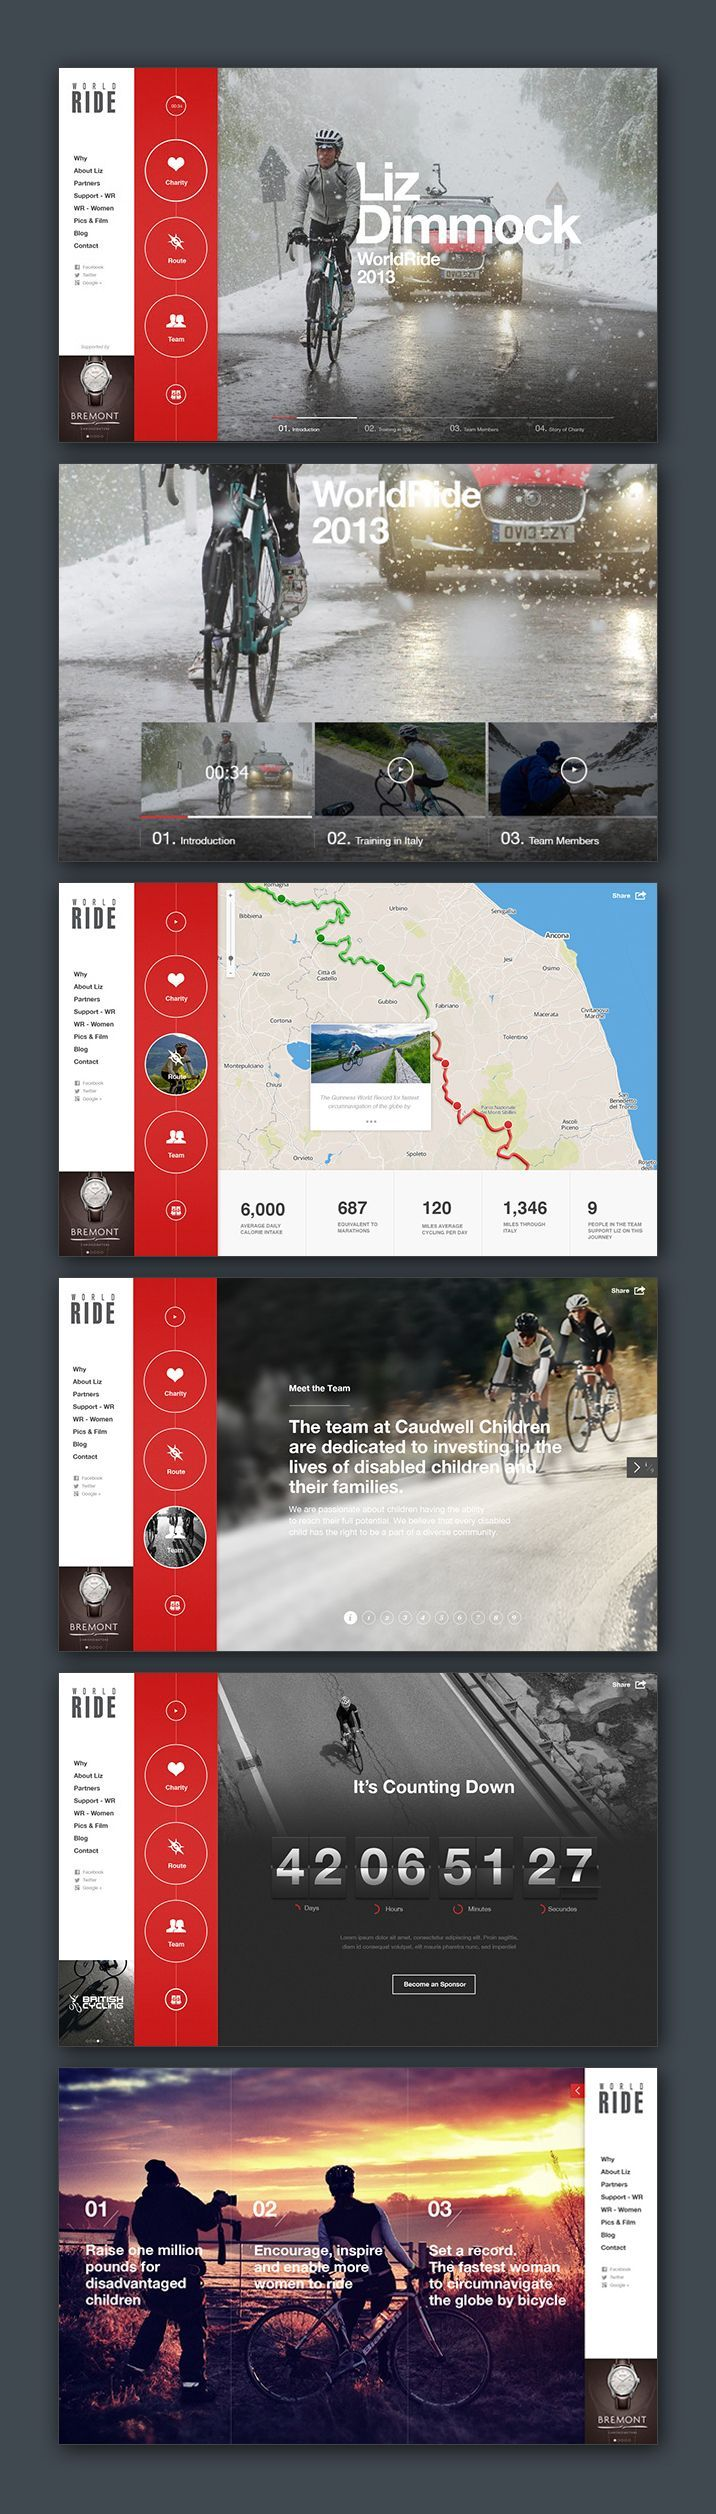 World Ride by Republik Media Web design